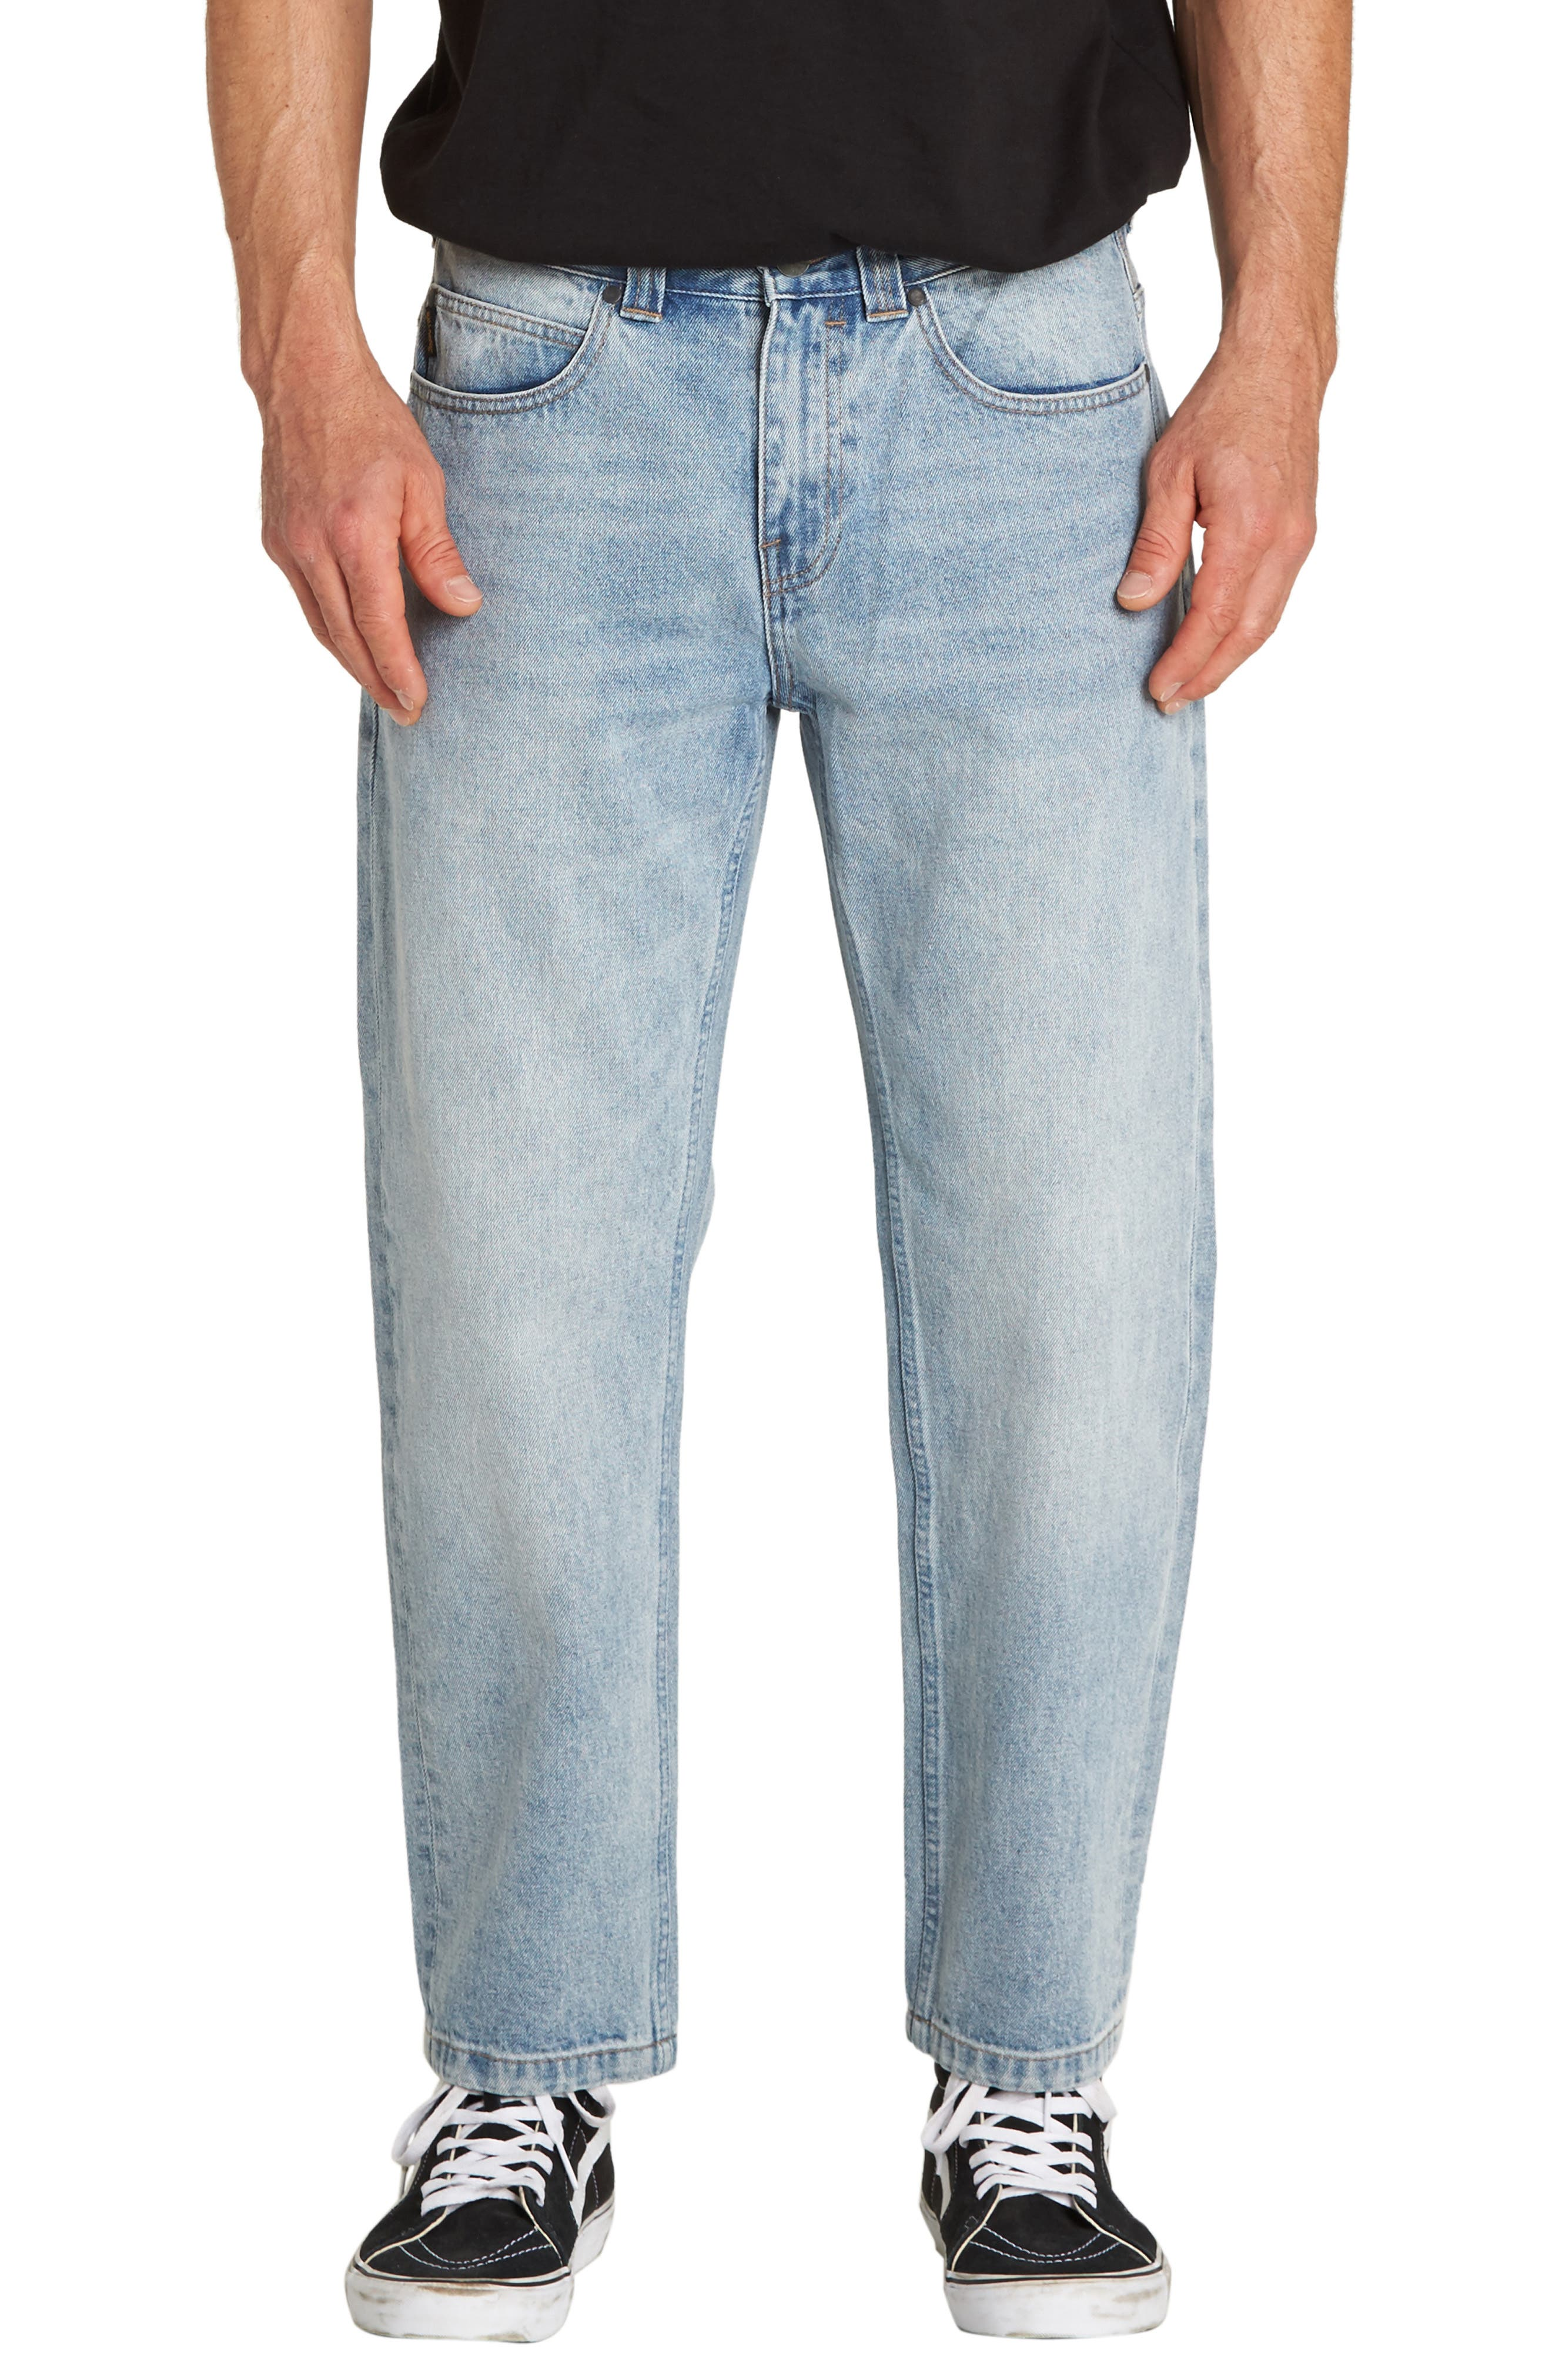 Fifty Crop Jeans,                         Main,                         color, INDIGO BLEACH